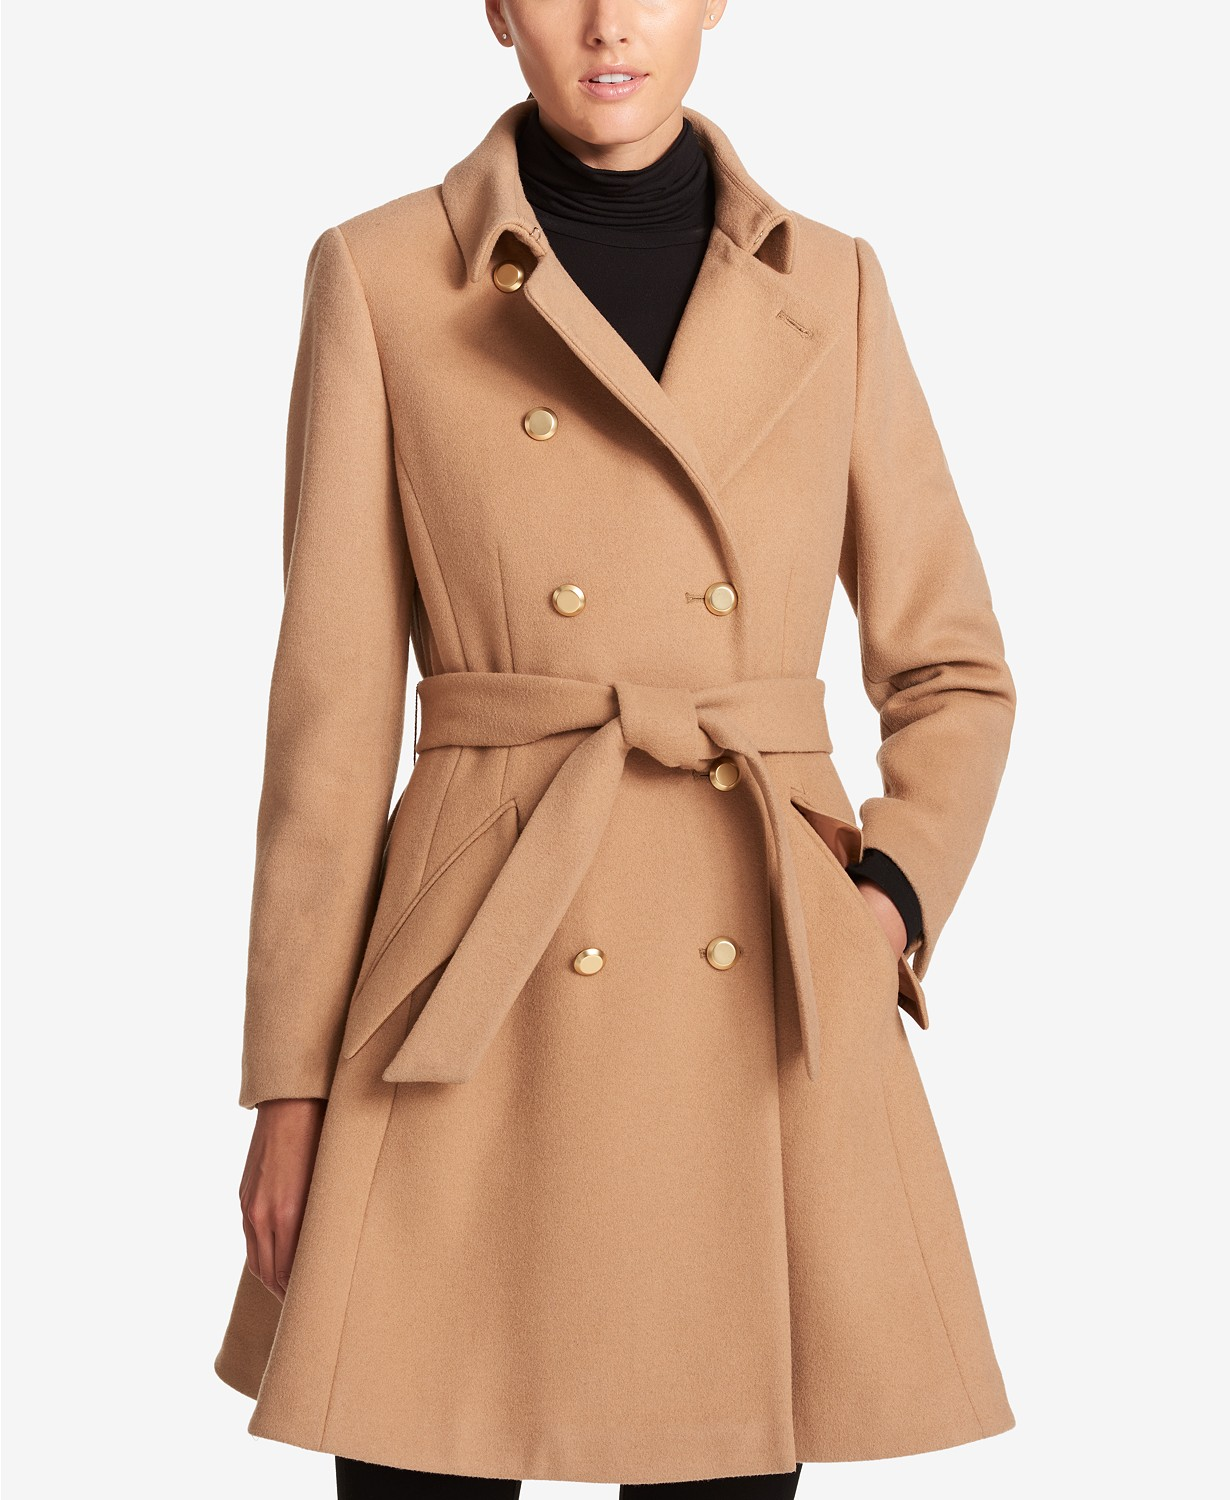 macys-petite-coats-ashley-laurence-fake-nude-pictures